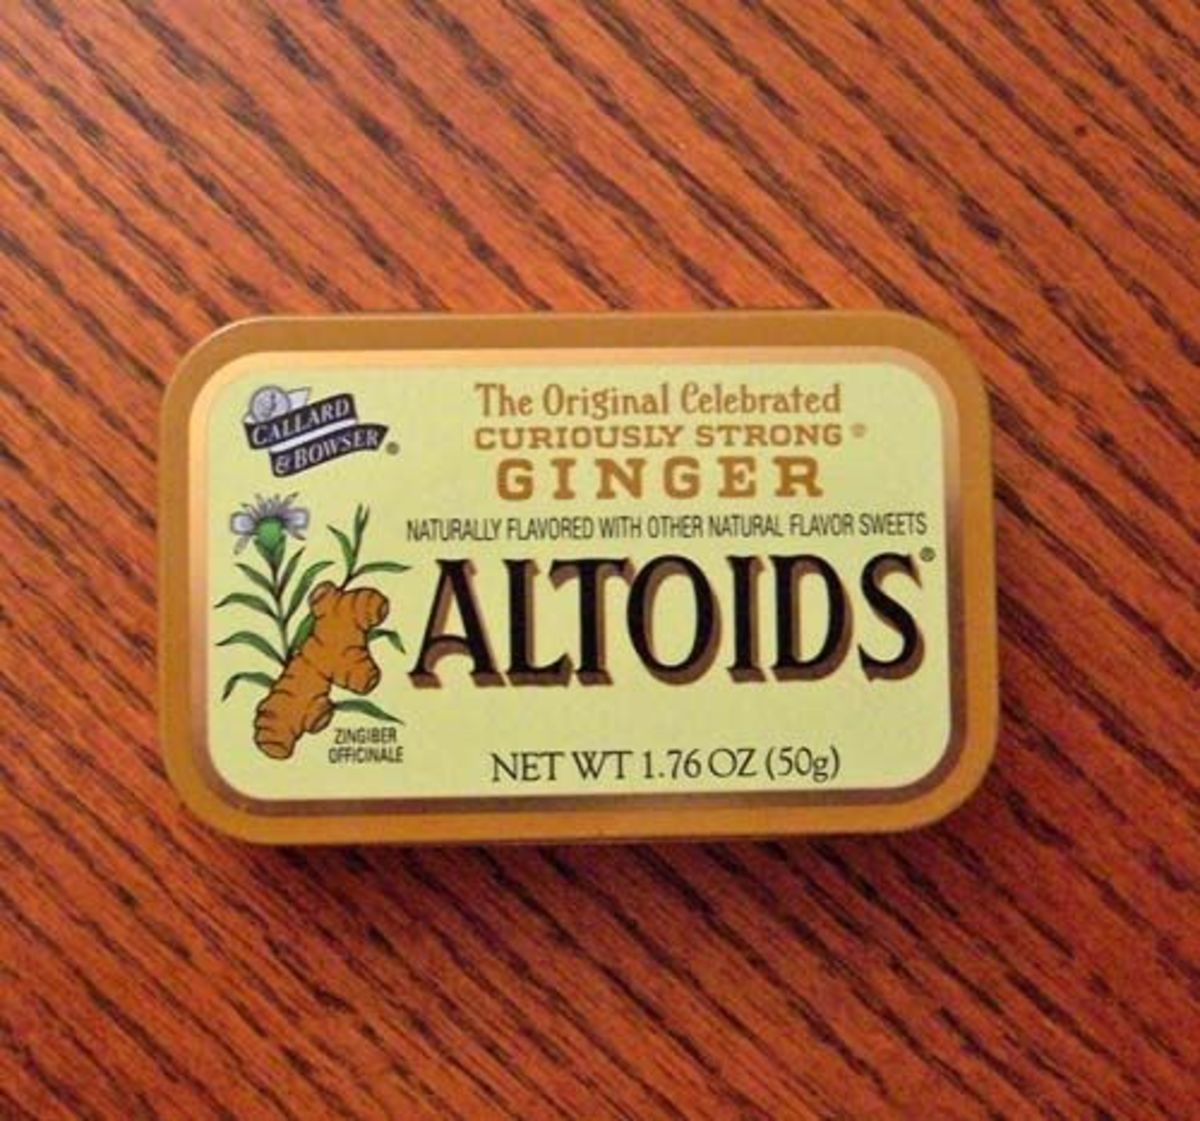 A smooth ginger Altoids tin found under my sink